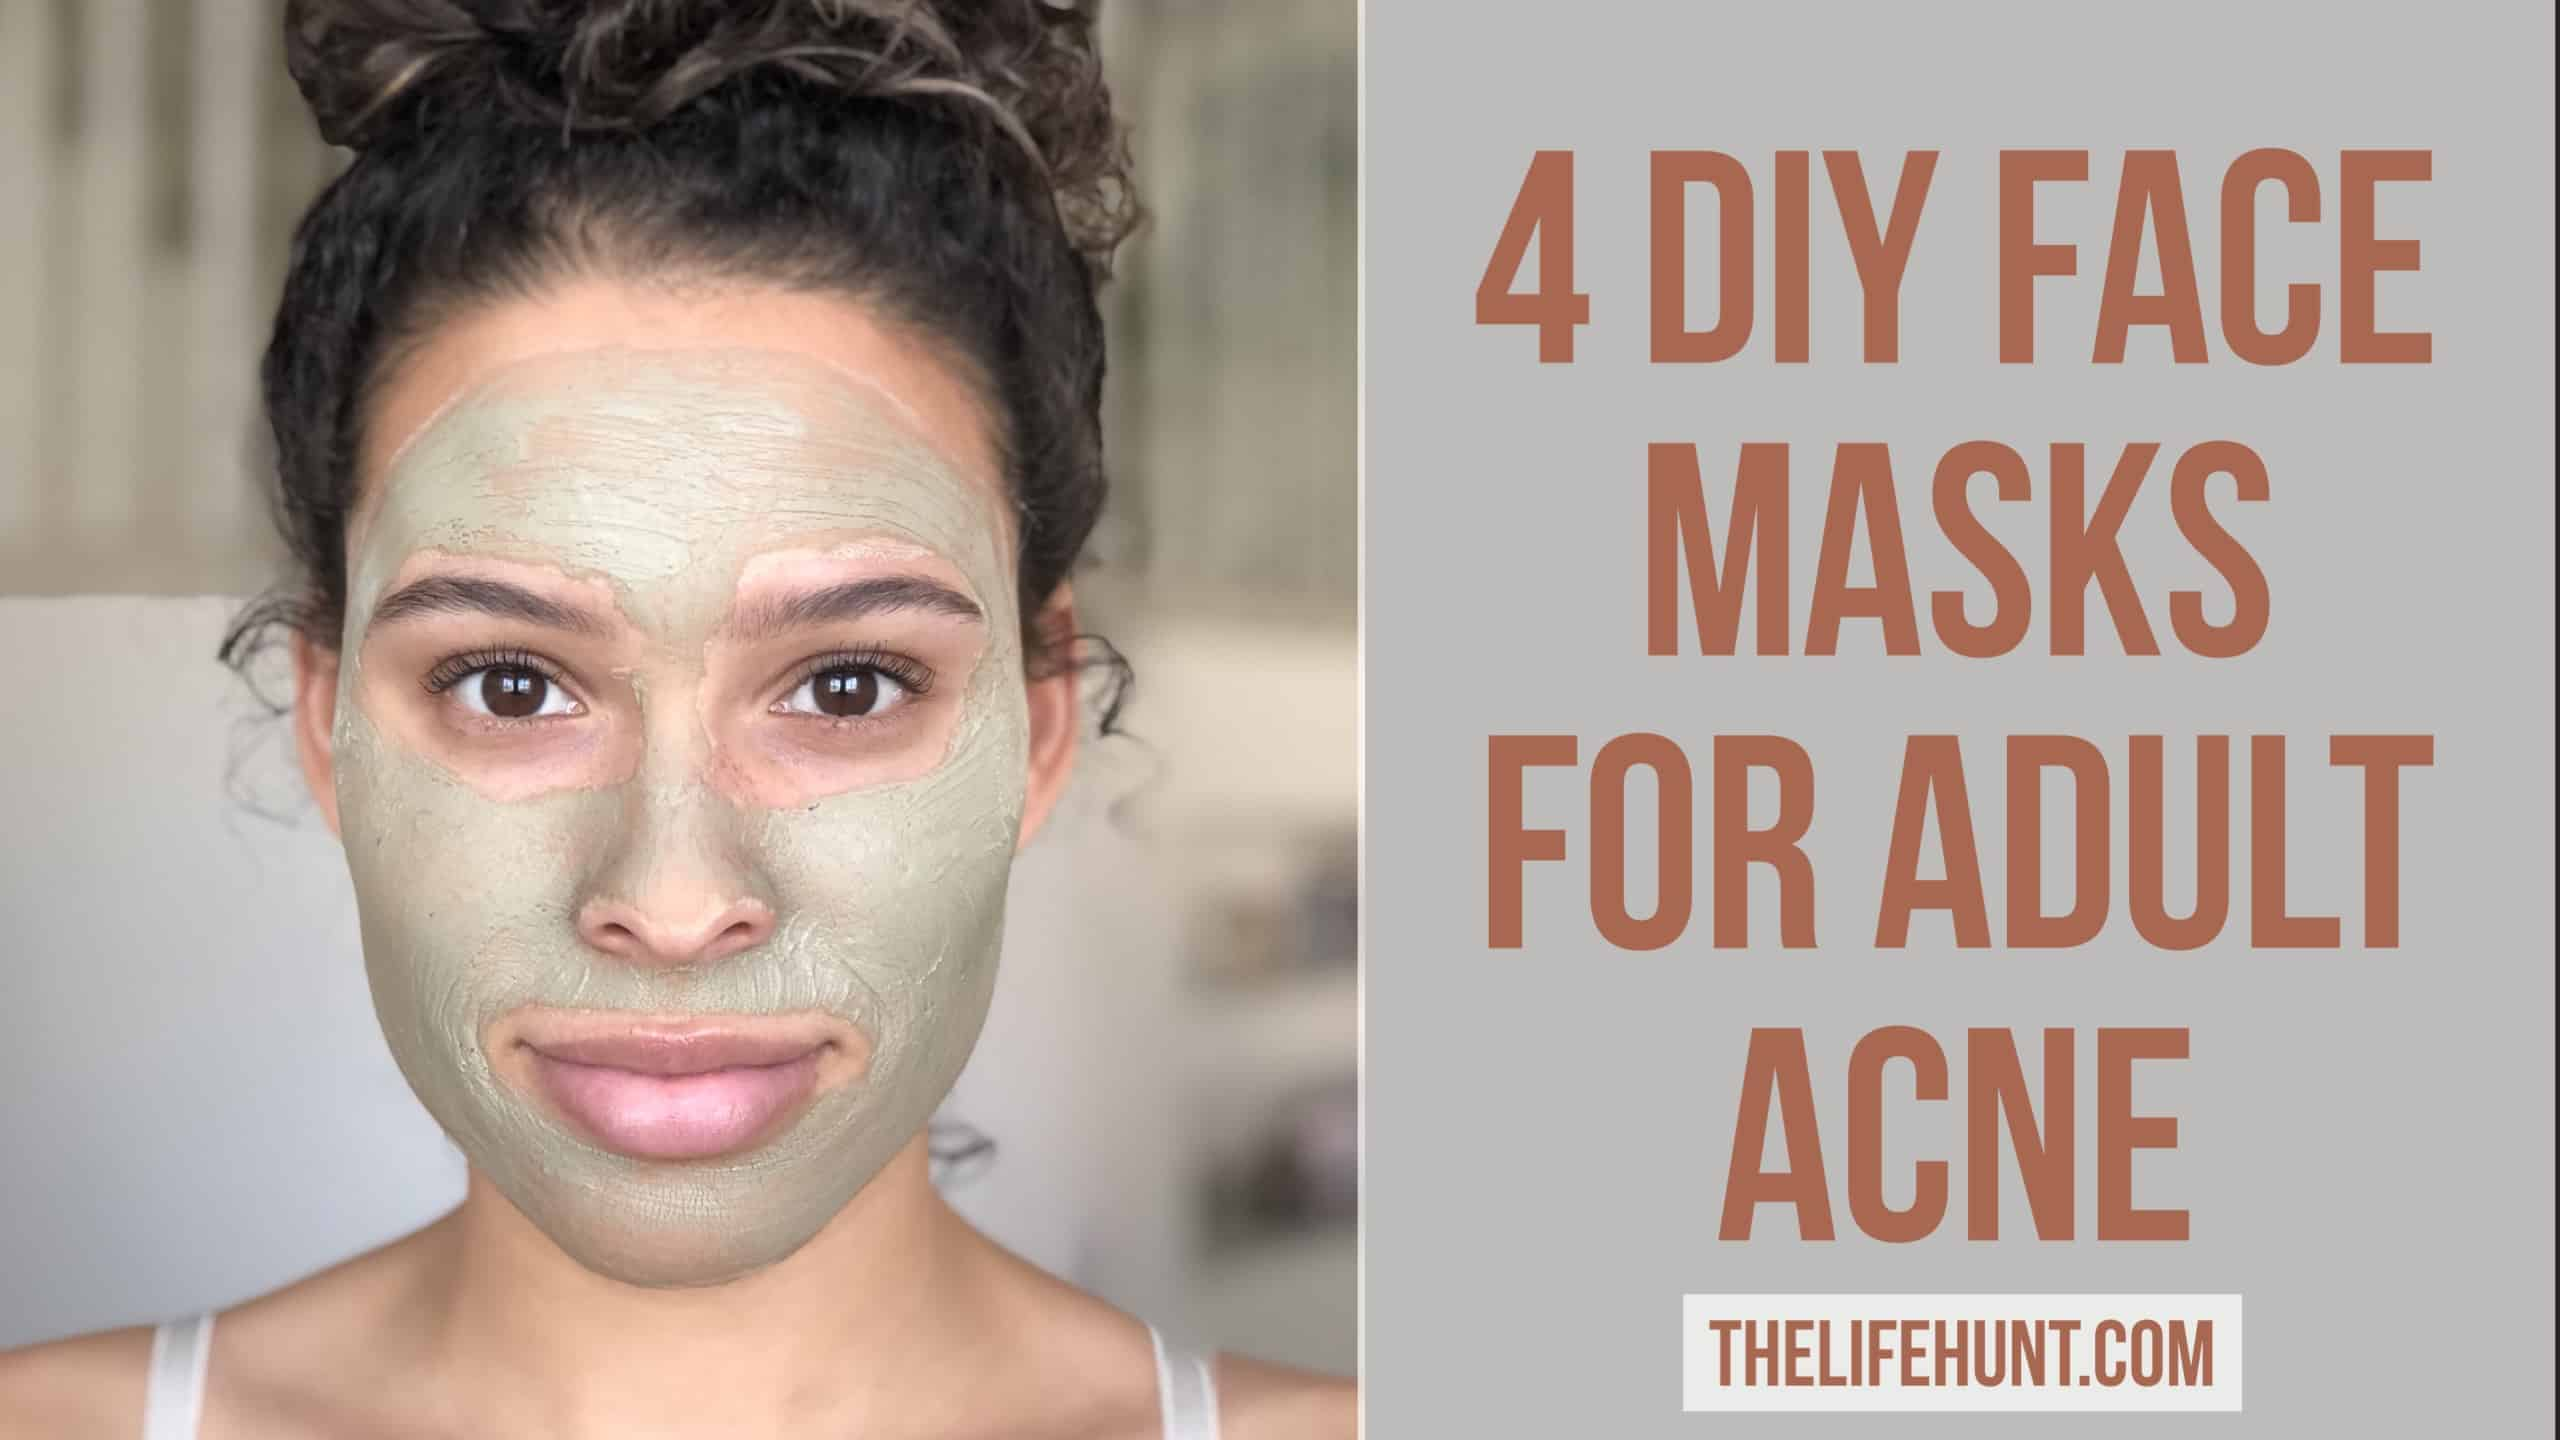 4 DIY Face Mask for Adult Acne